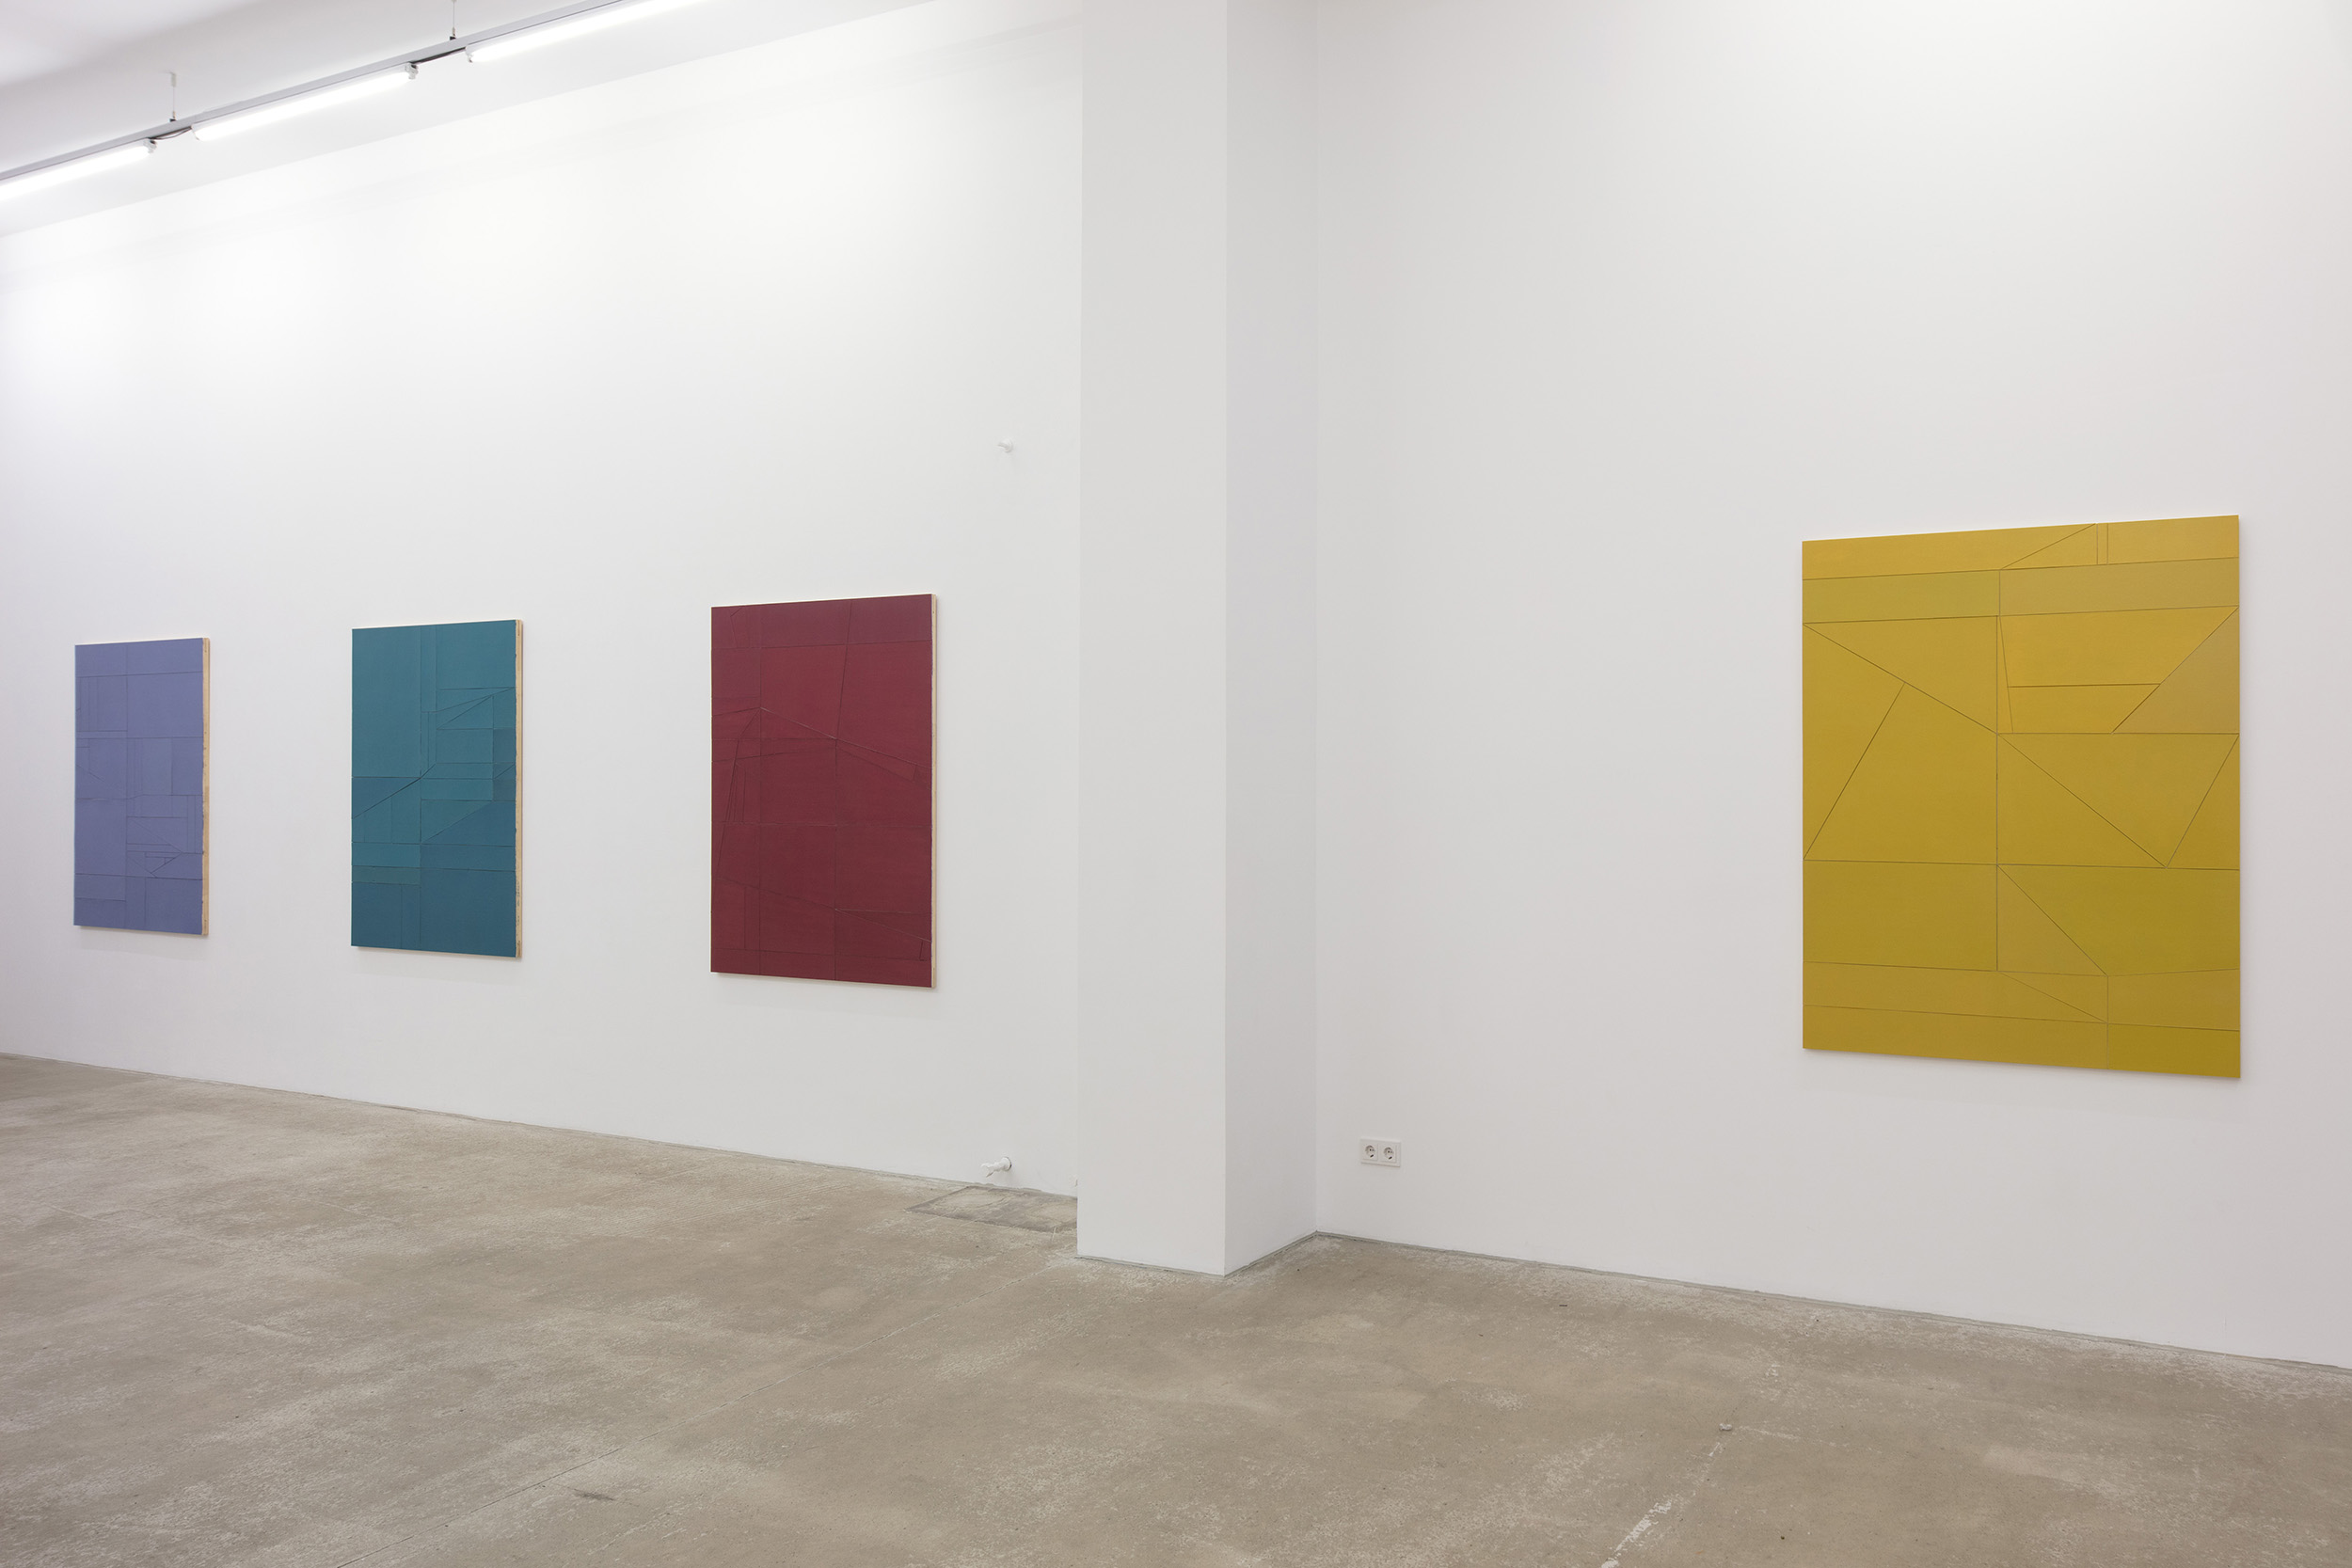 5 - Florian Schmit at Daniel Marzona Berlin - suggested by Ivan Seal